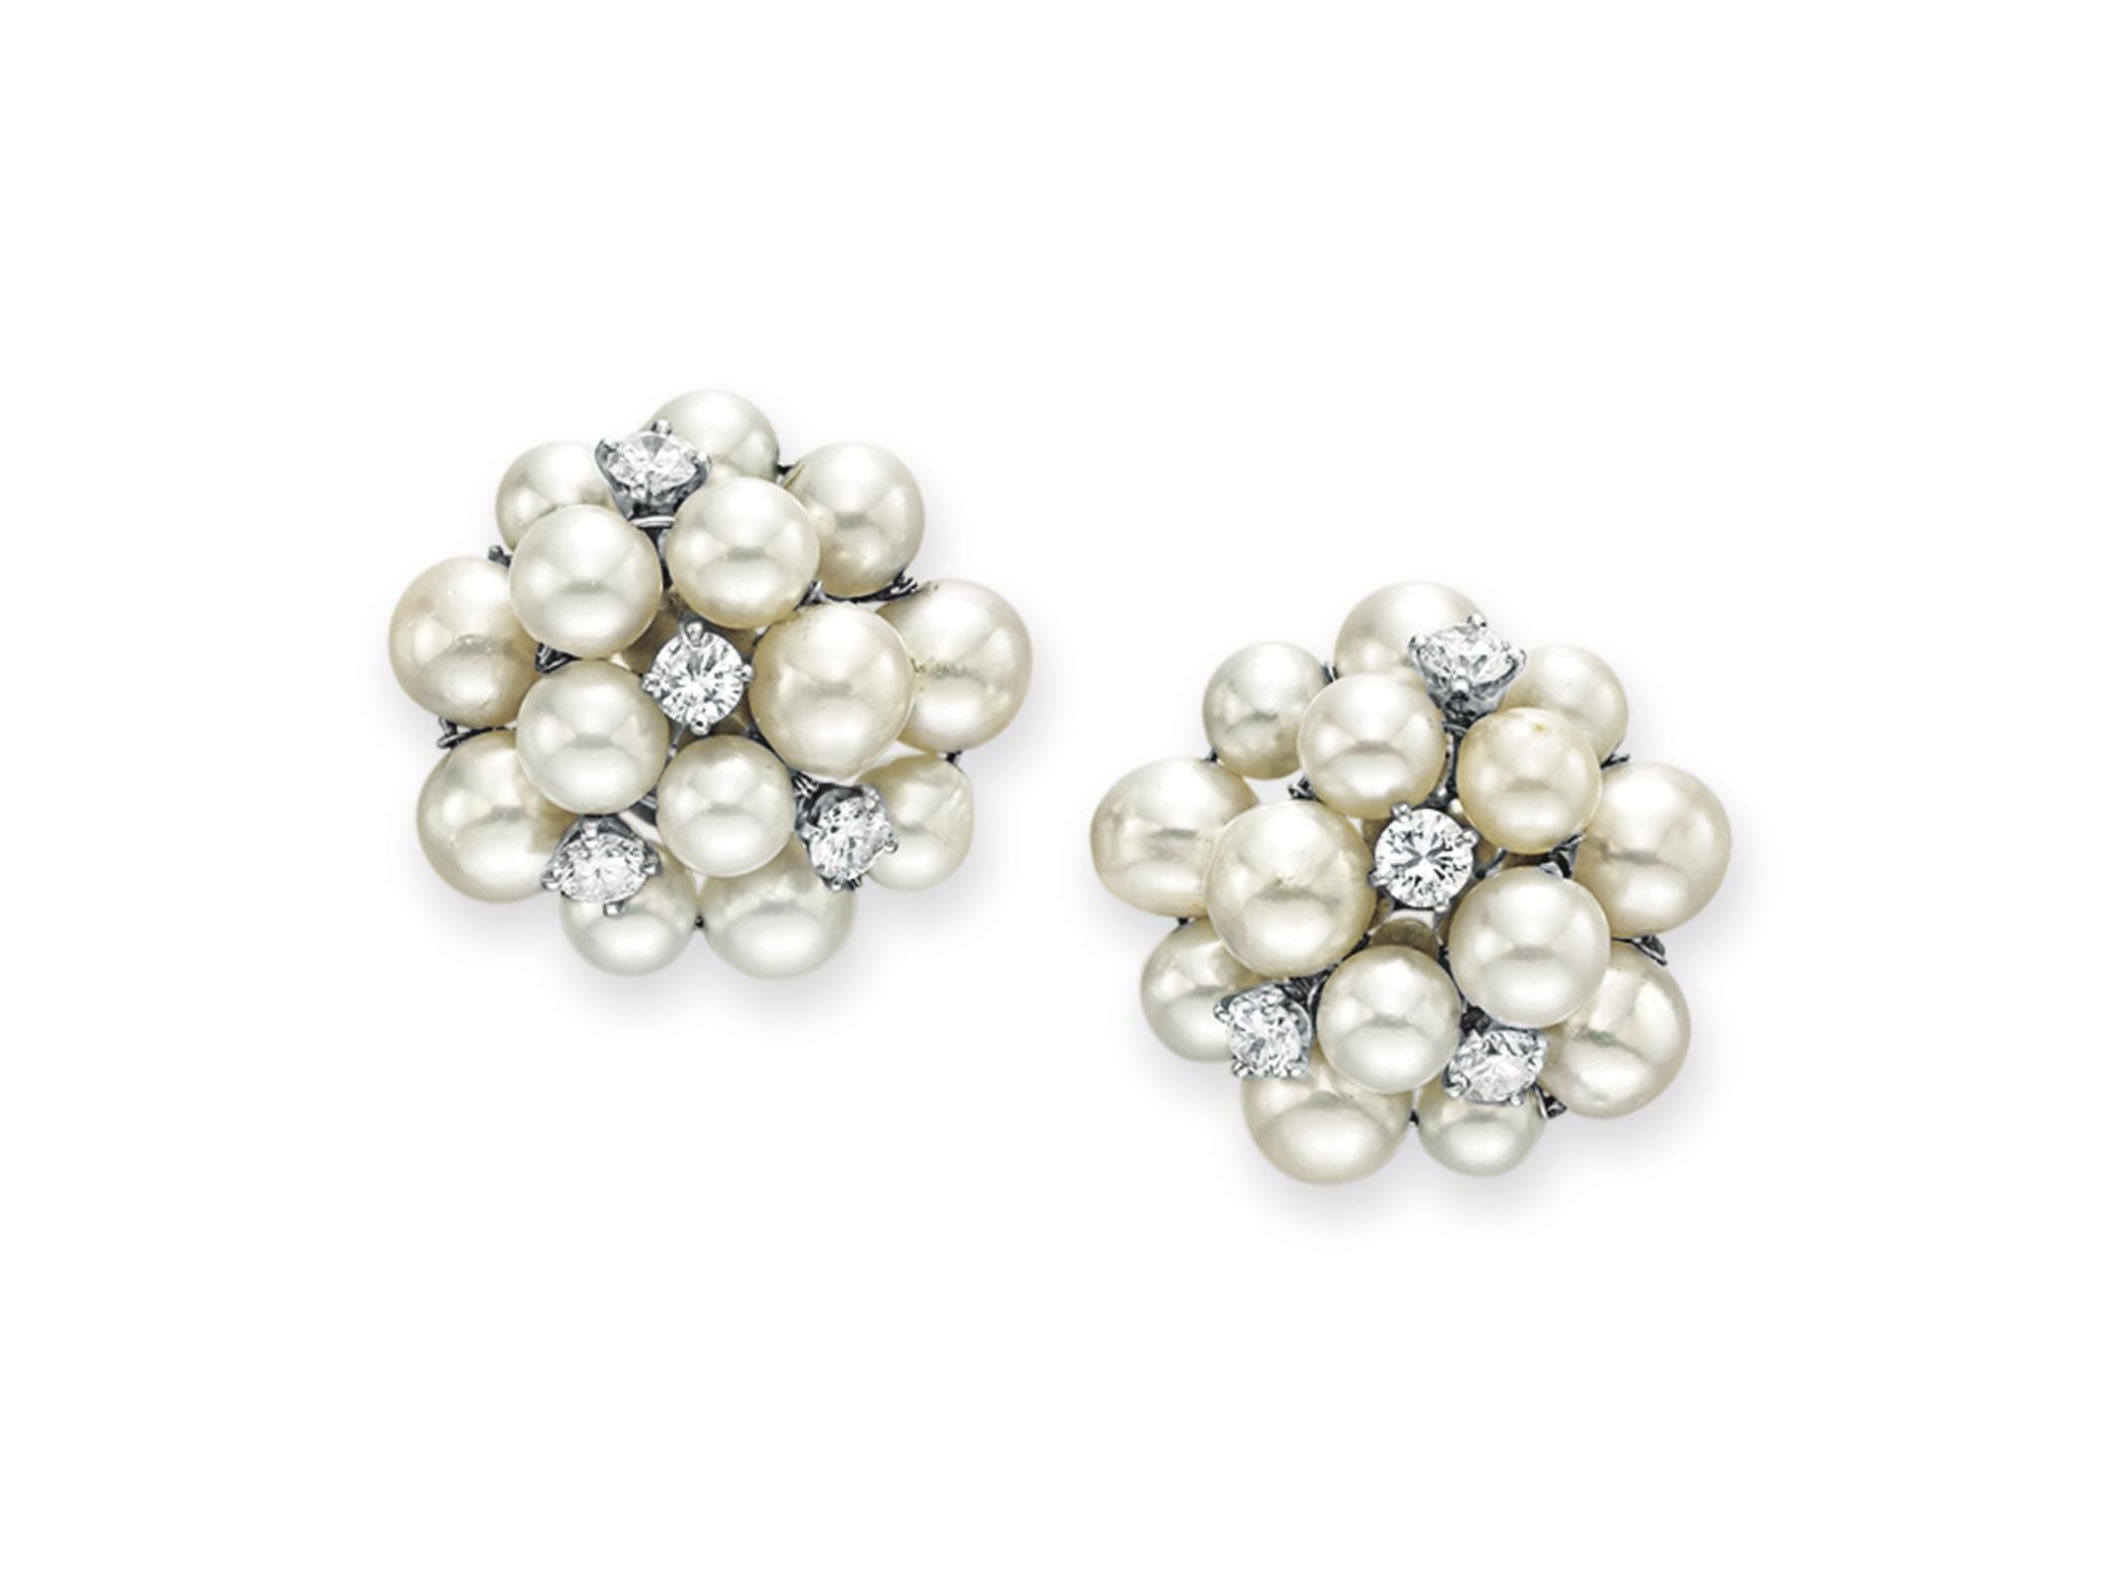 A PAIR OF DIAMOND AND CULTURED PEARL EAR CLIPS, BY SEAMAN SCHEPPS